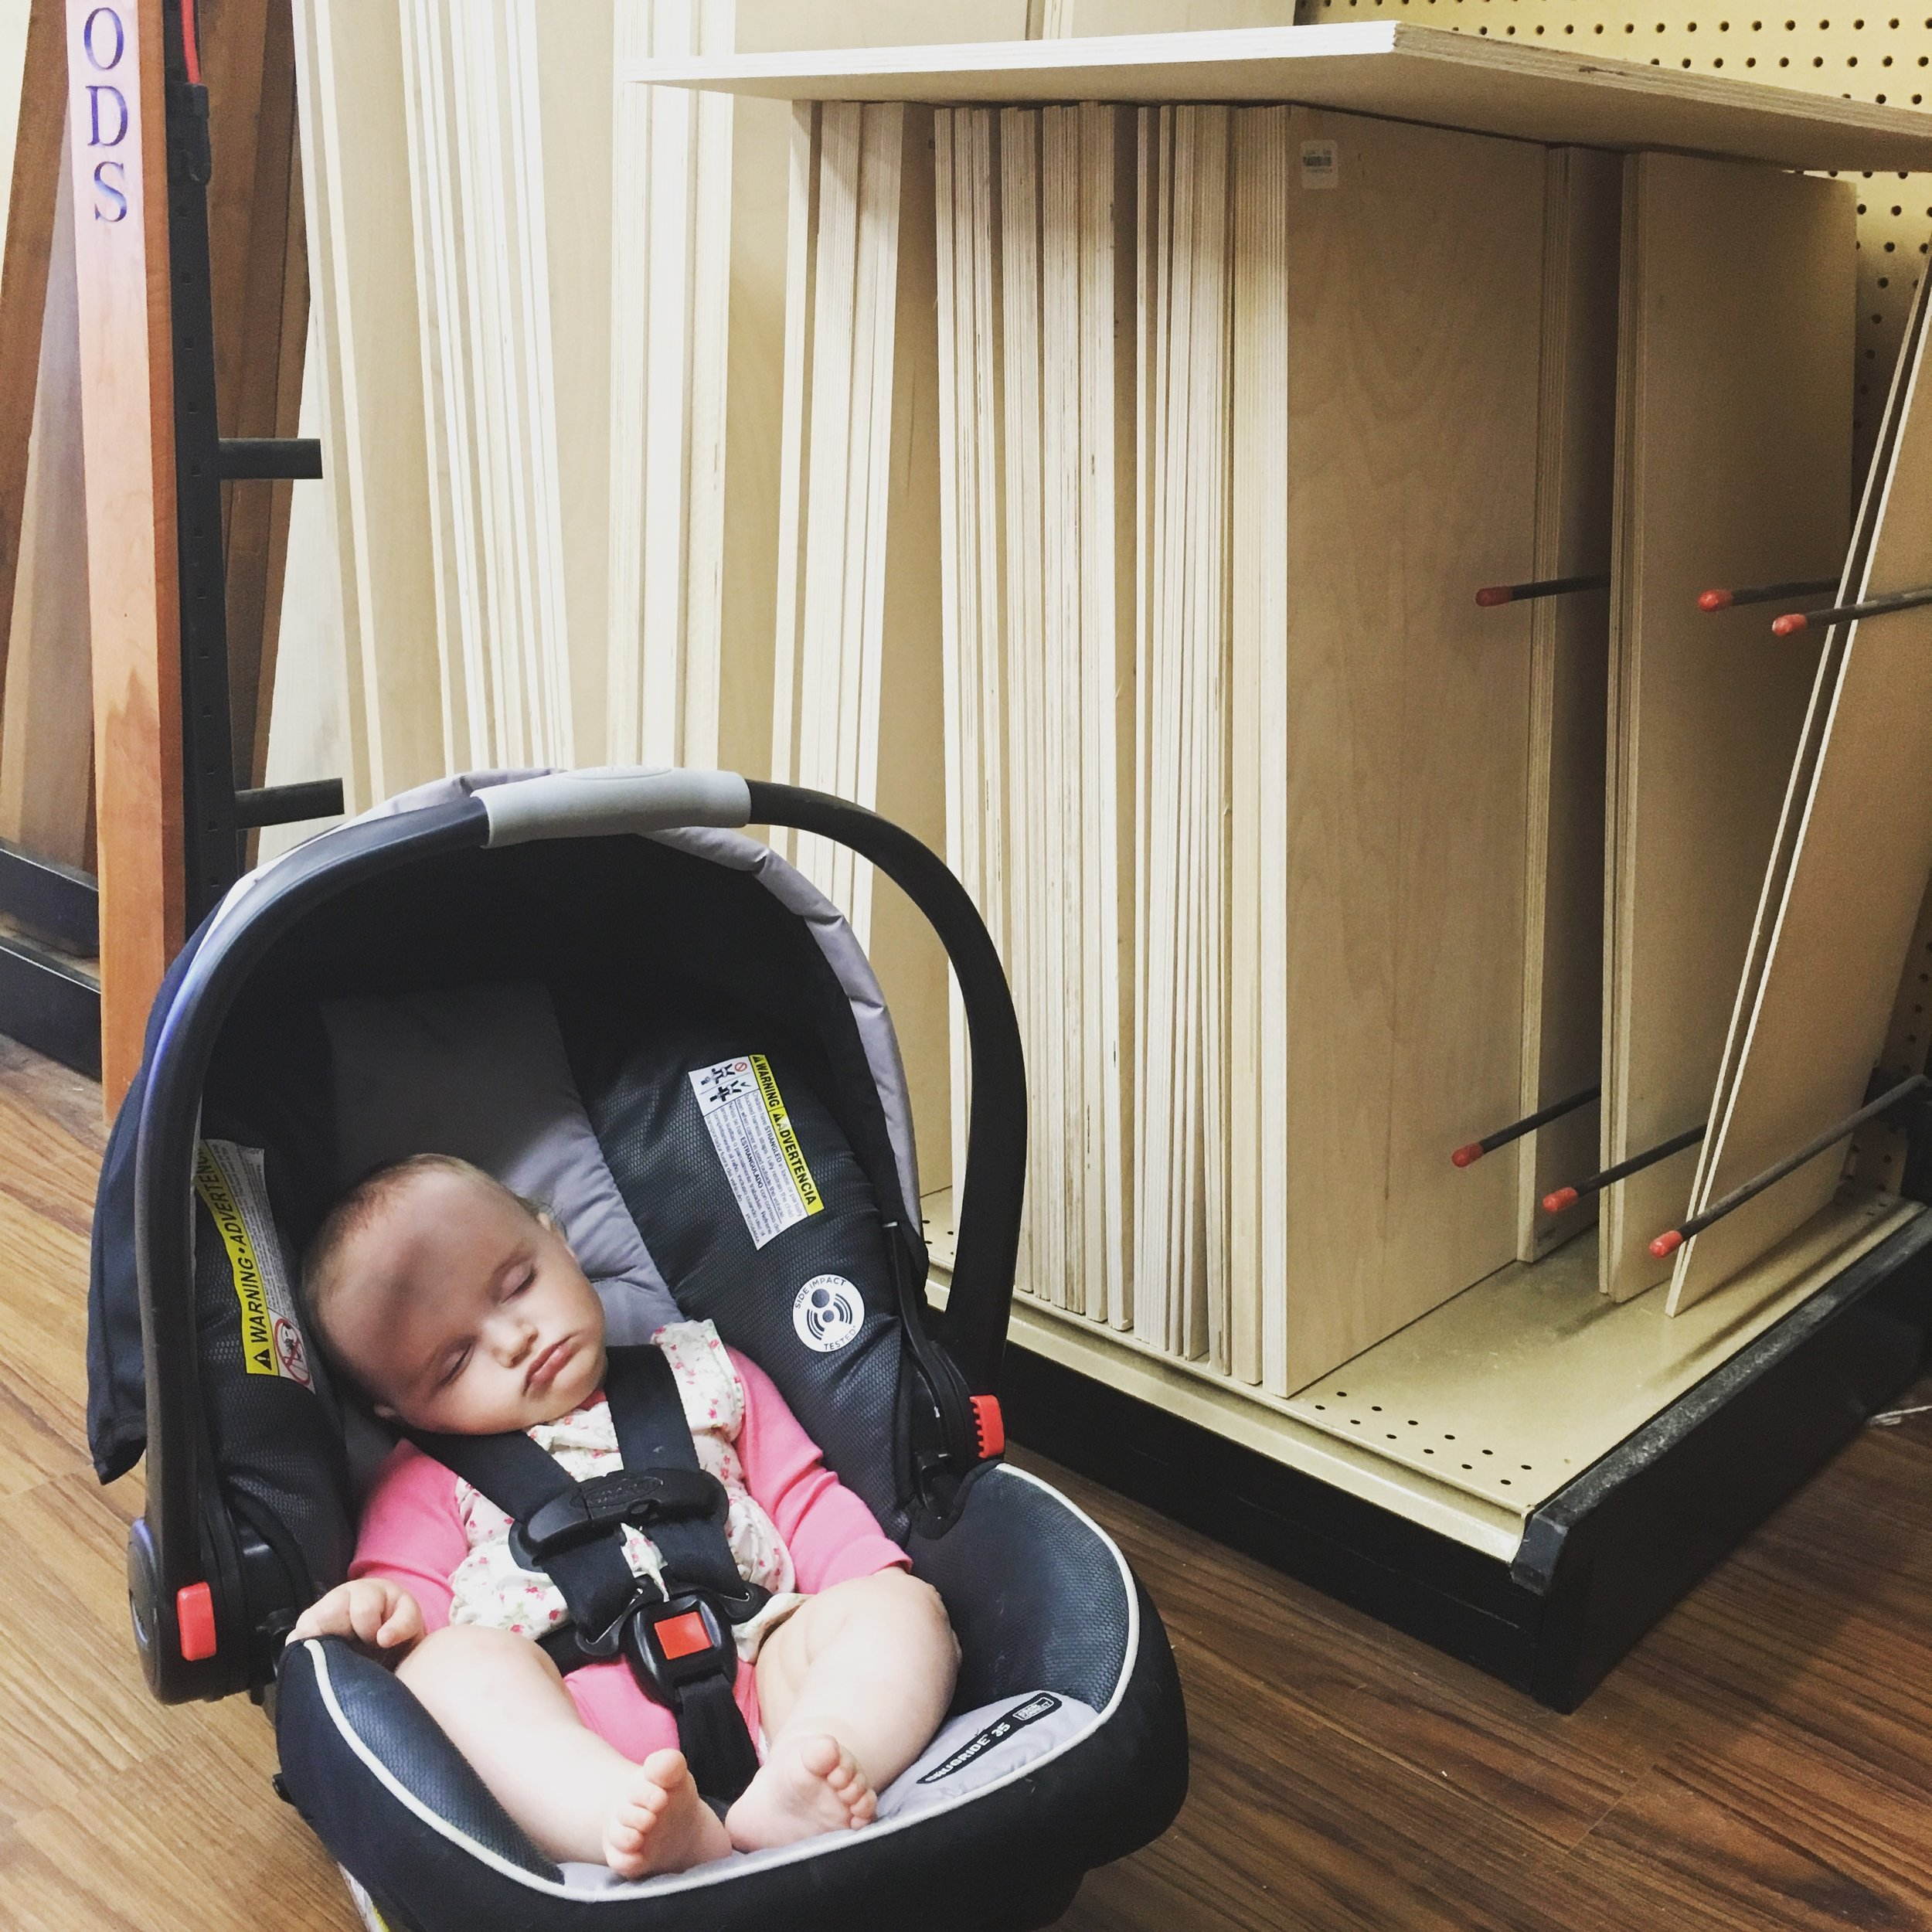 Alice catching some Z's at Rockler